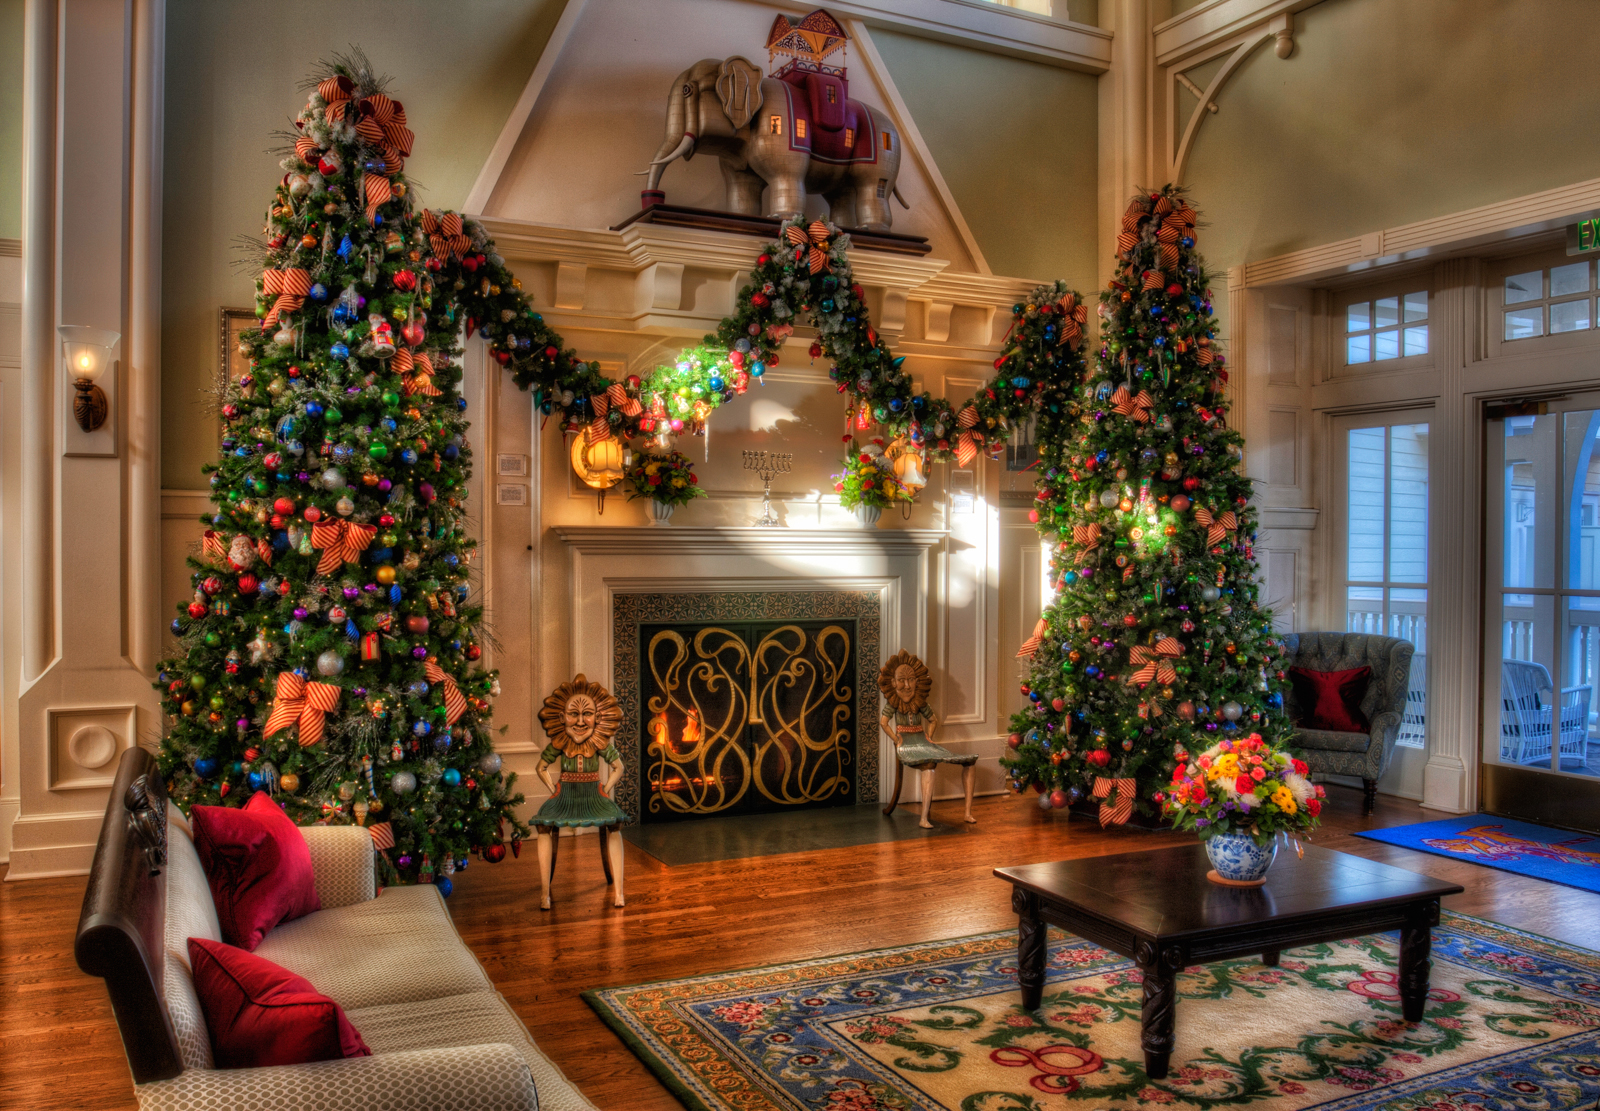 disney christmas decorations - When Is Disney Decorated For Christmas